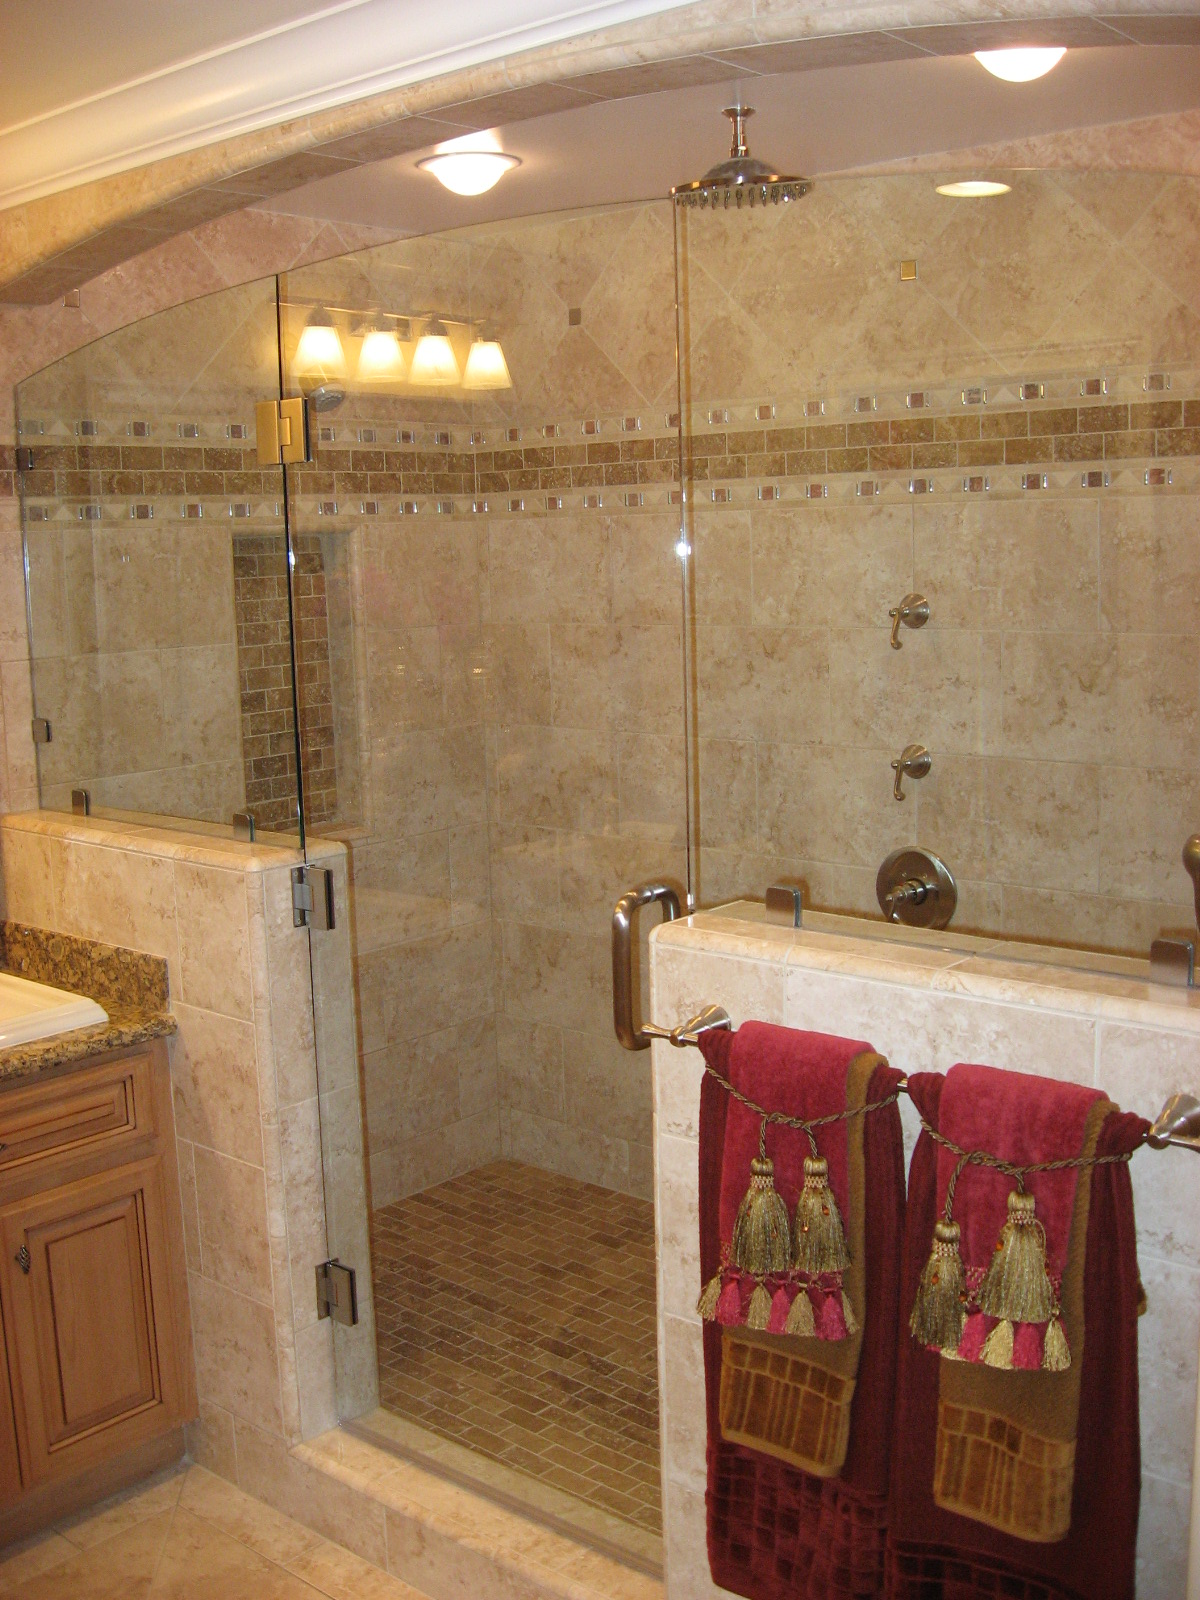 Small Bathroom Shower Tile Ideas Large And Beautiful Photos Photo To Select Small Bathroom Shower Tile Ideas Design Your Home